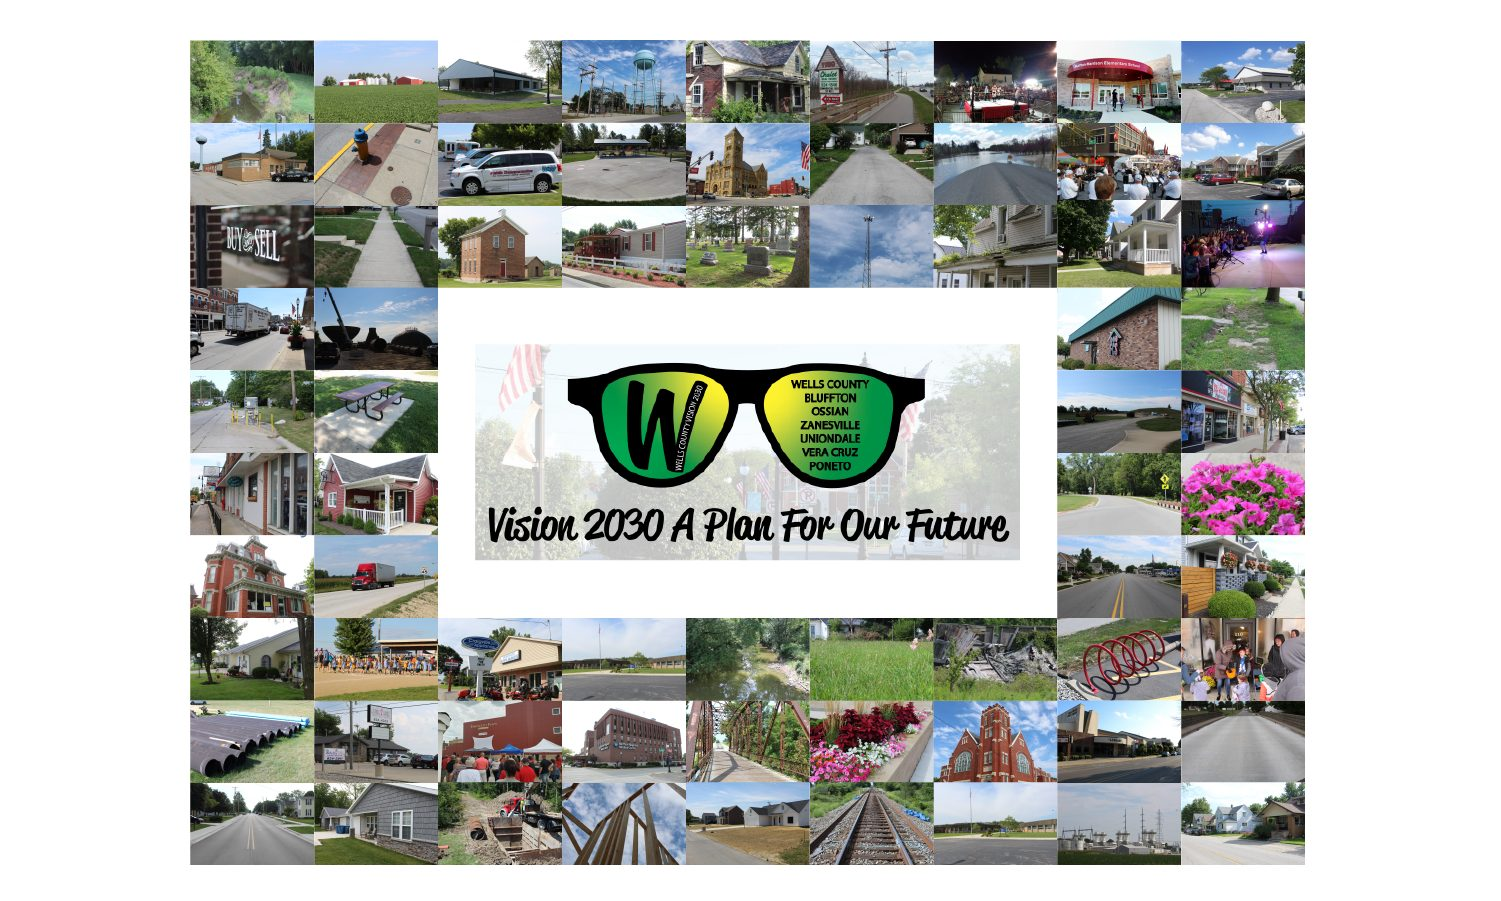 Vision 2030 A Plan For Our Future